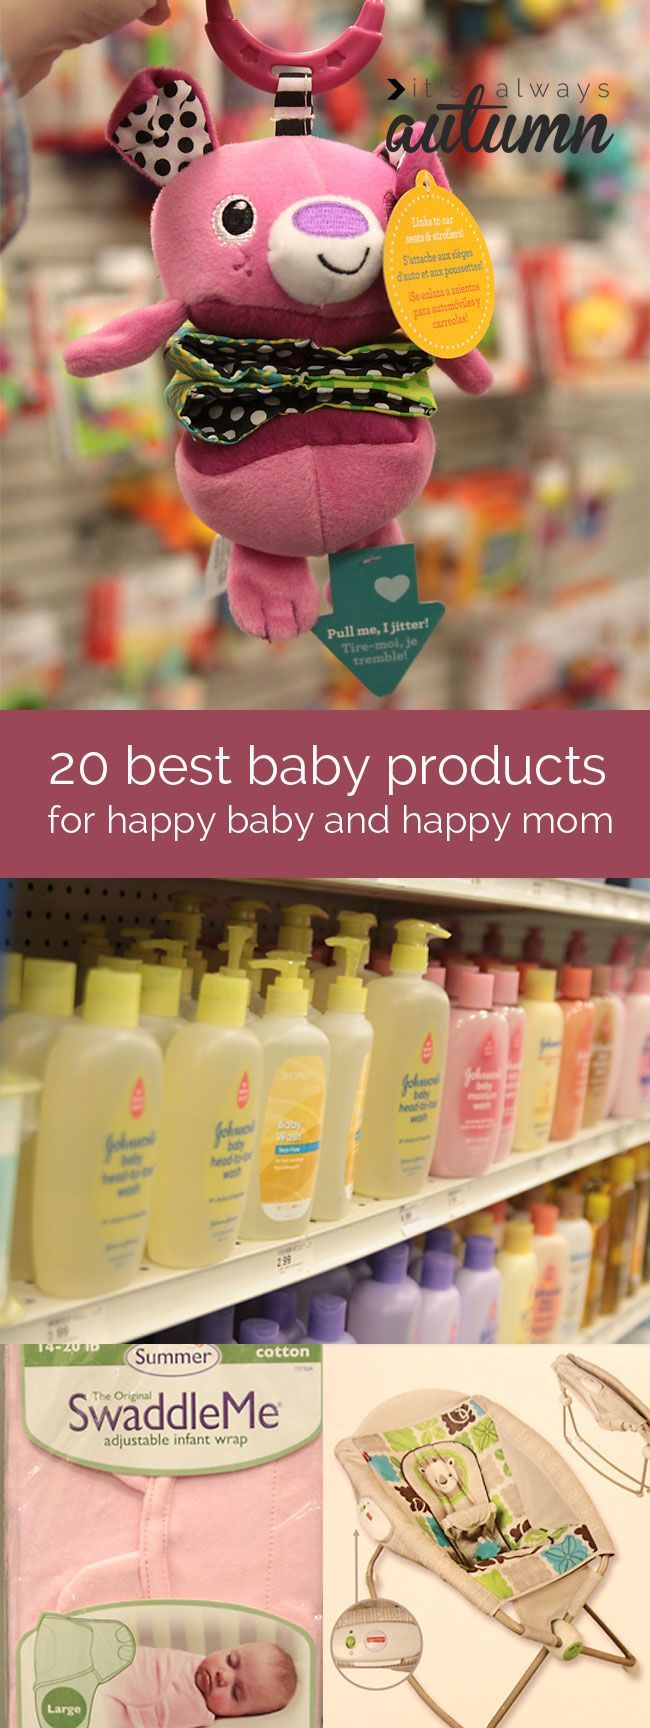 20 best #baby #products for making life as a new mom easier. Honestly, no one needs everything on this list, but each item really would simplify life with a new baby - worth a look.